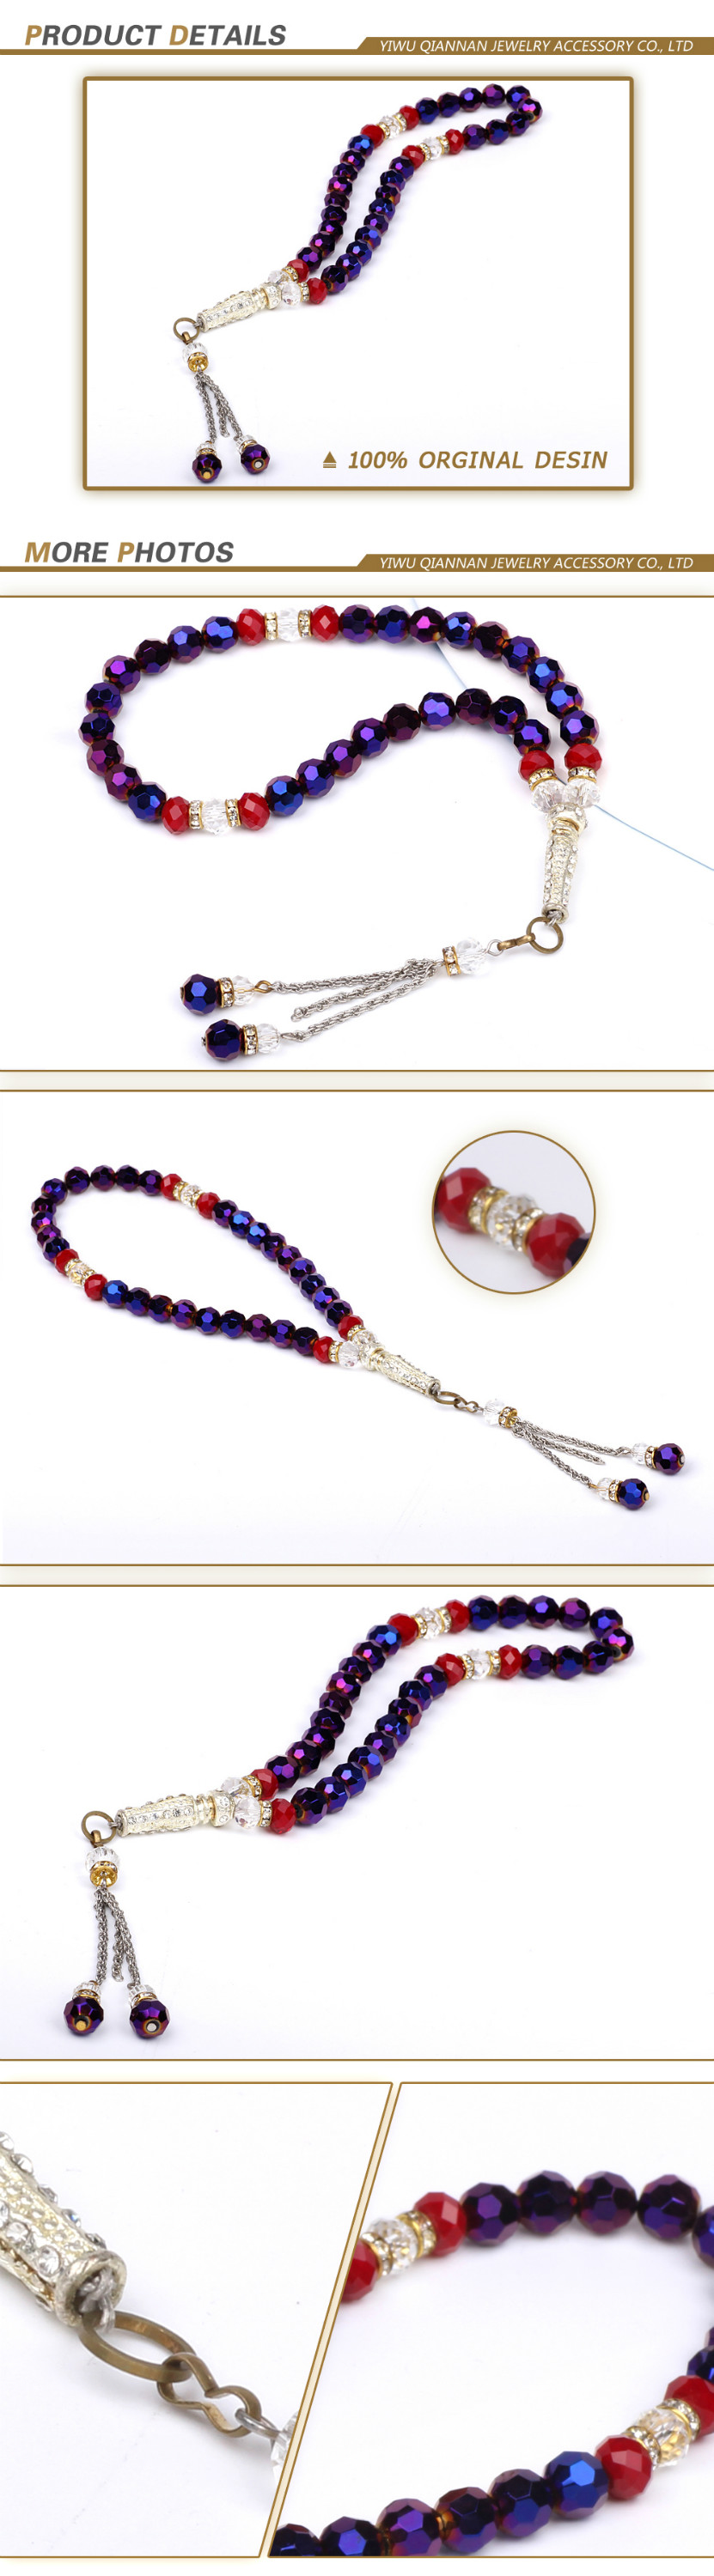 Wholesale cheap solid color round glass beads prayer beads